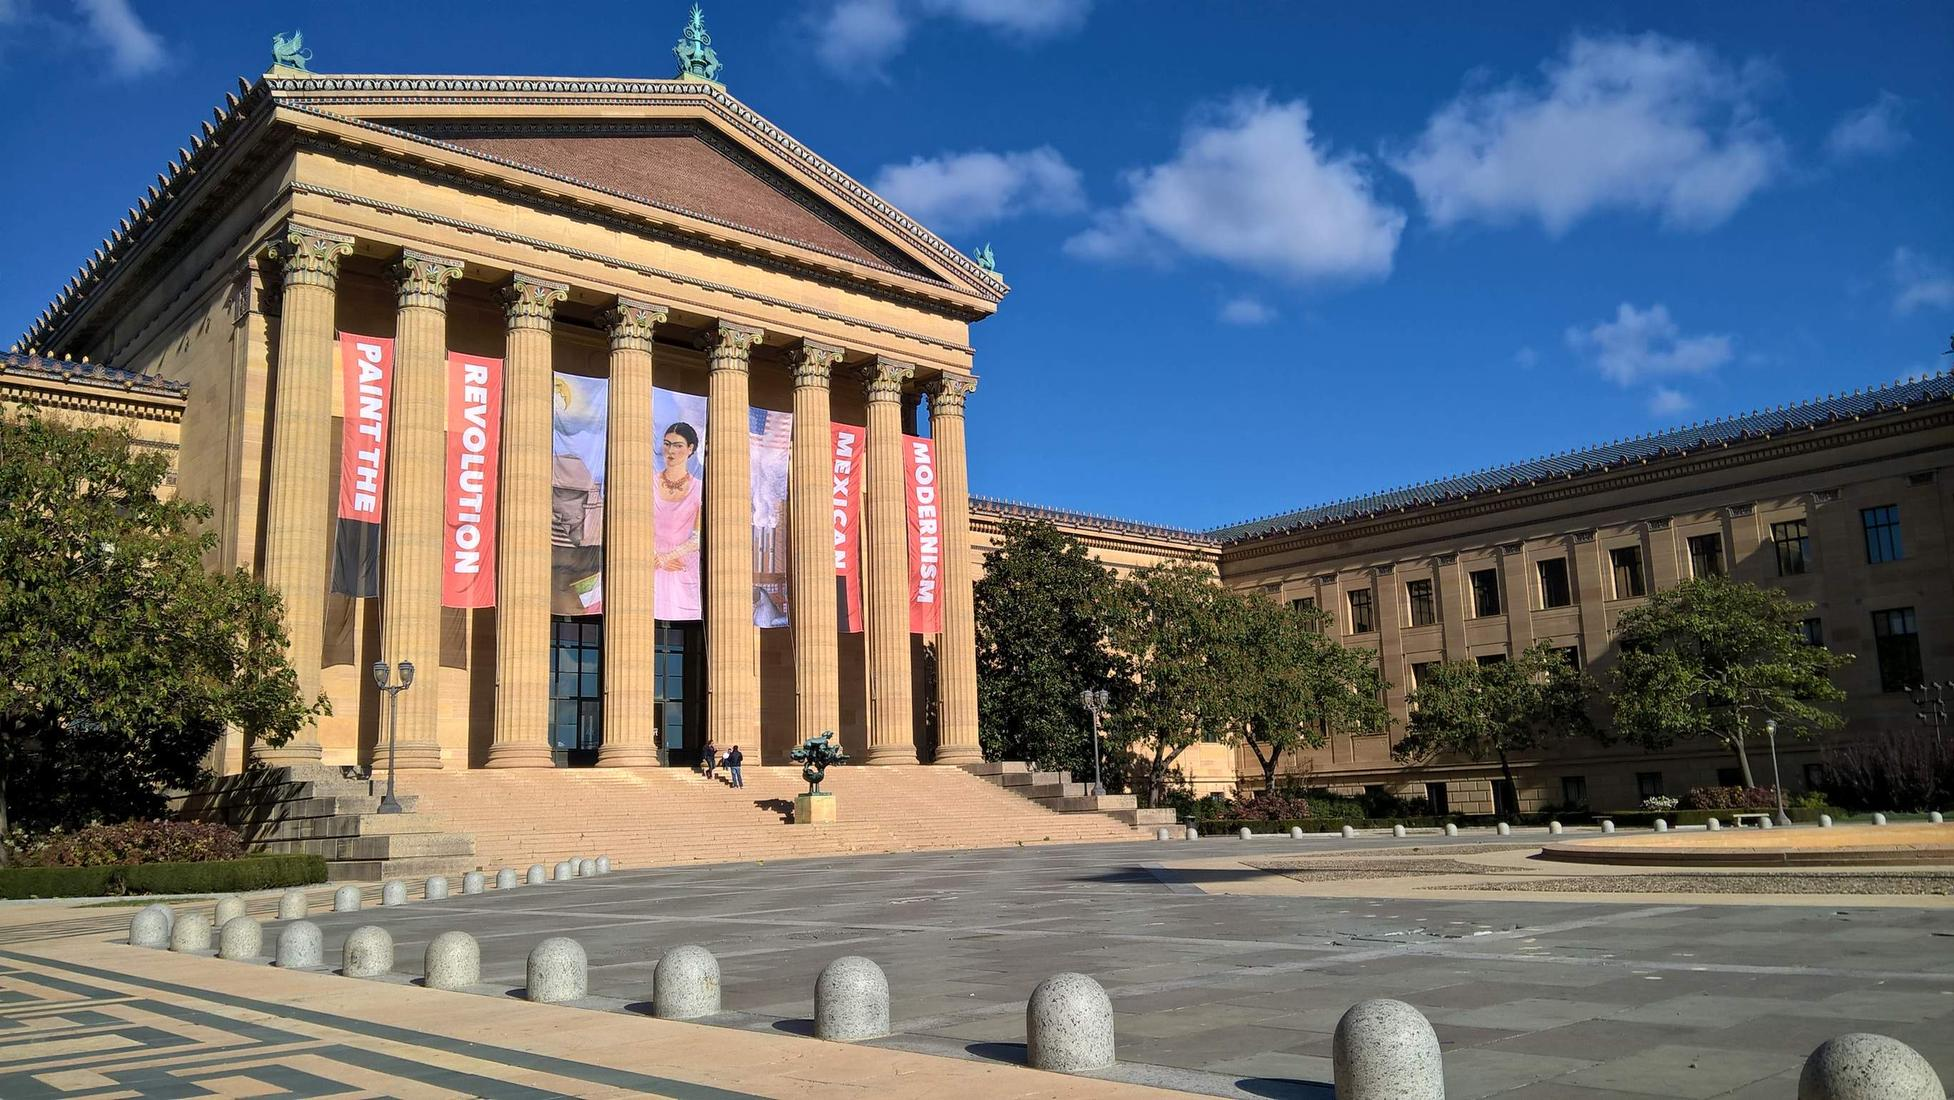 A One-Day Visit to Philadelphia